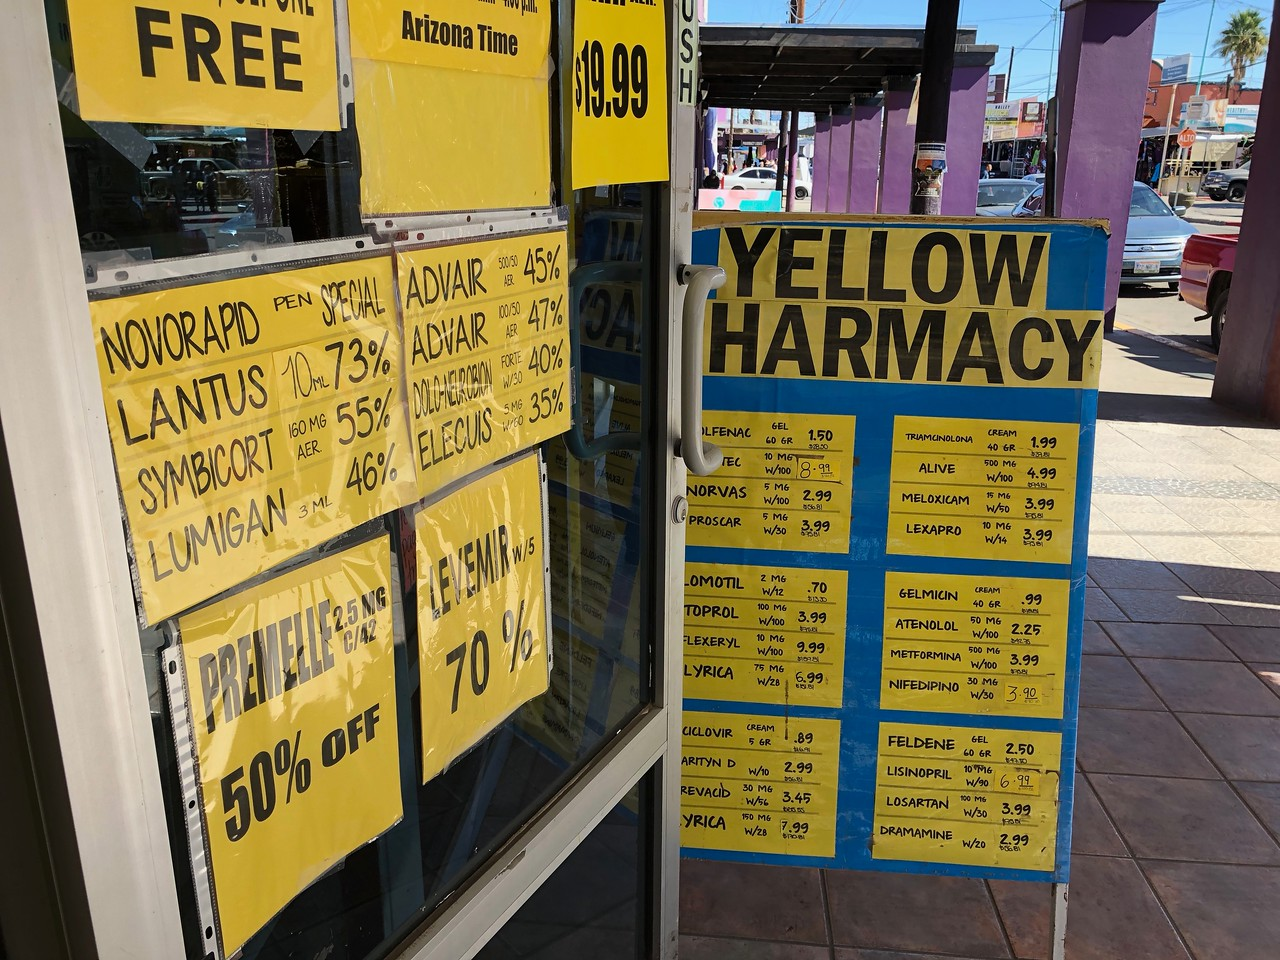 Los Algodones Mexico Pharmacy price List